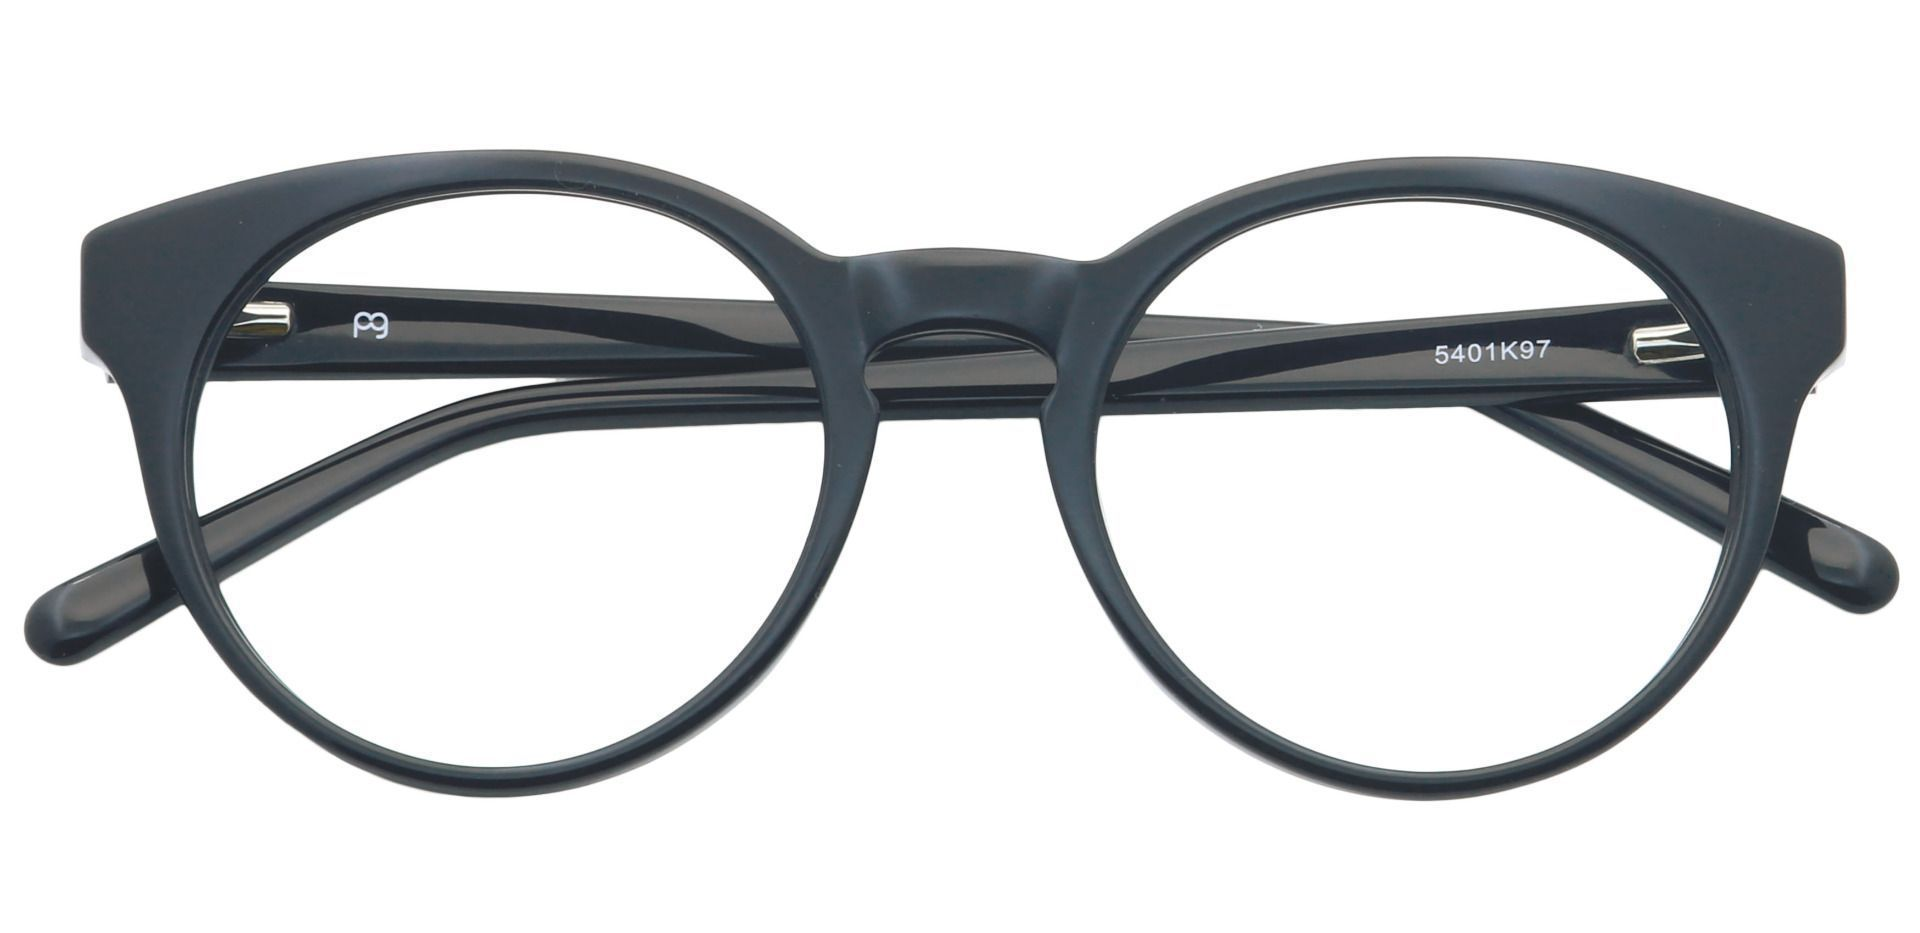 Spright Round Prescription Glasses - Shiny Black